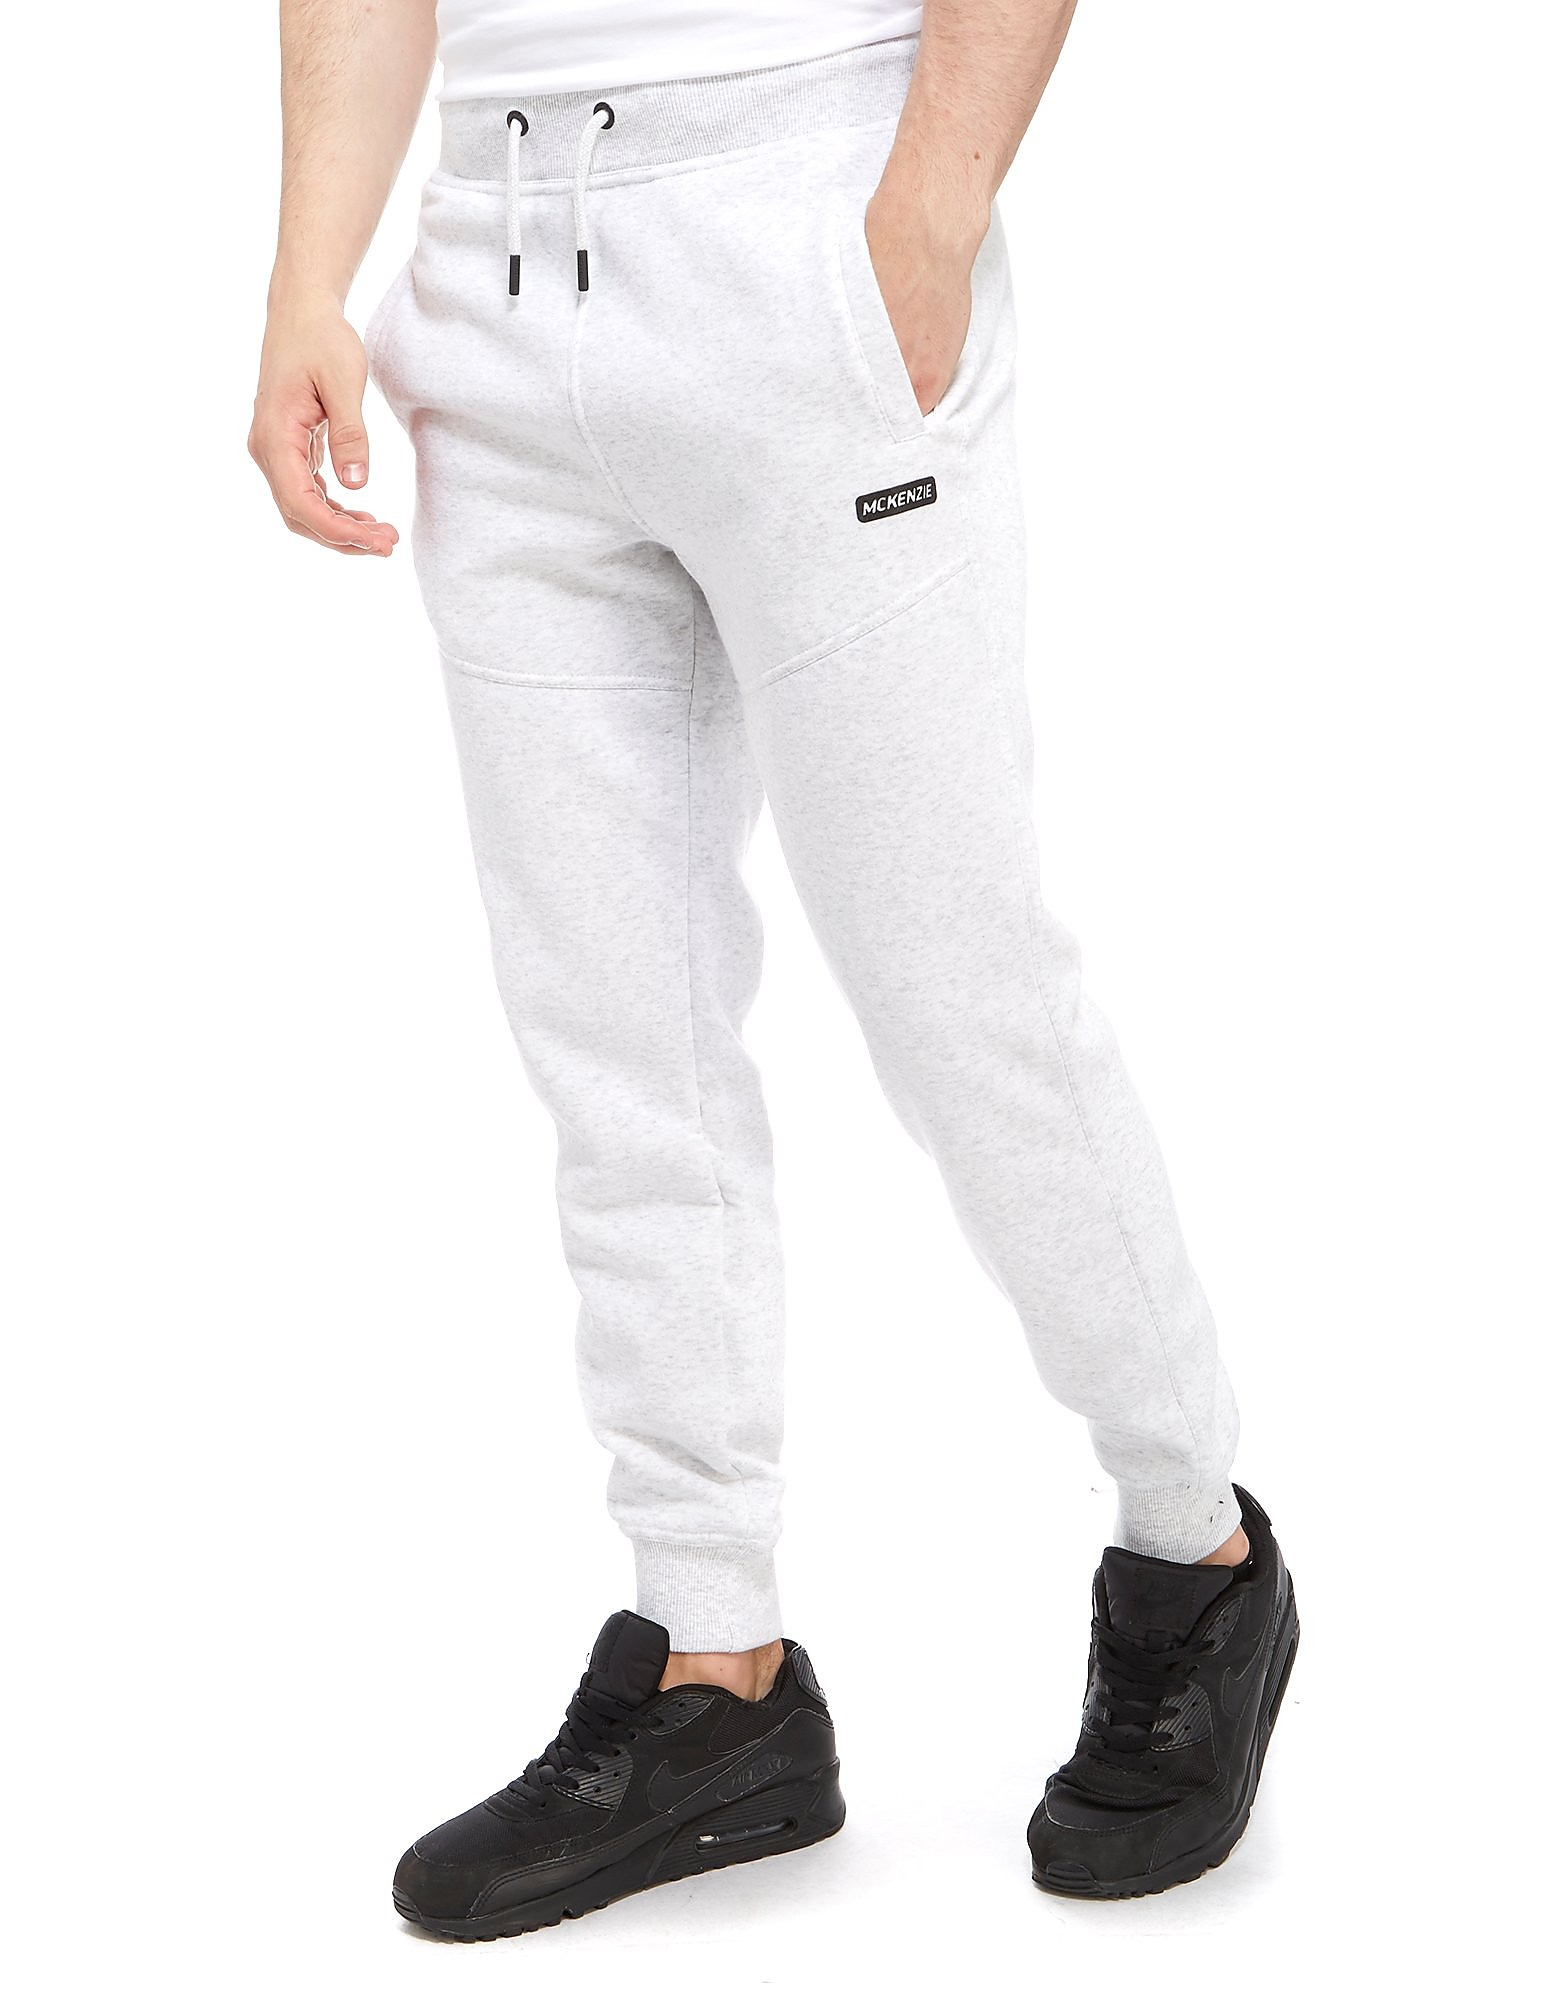 McKenzie Pantalon Stirling Homme - Only at JD - Silver Marl, Silver Marl